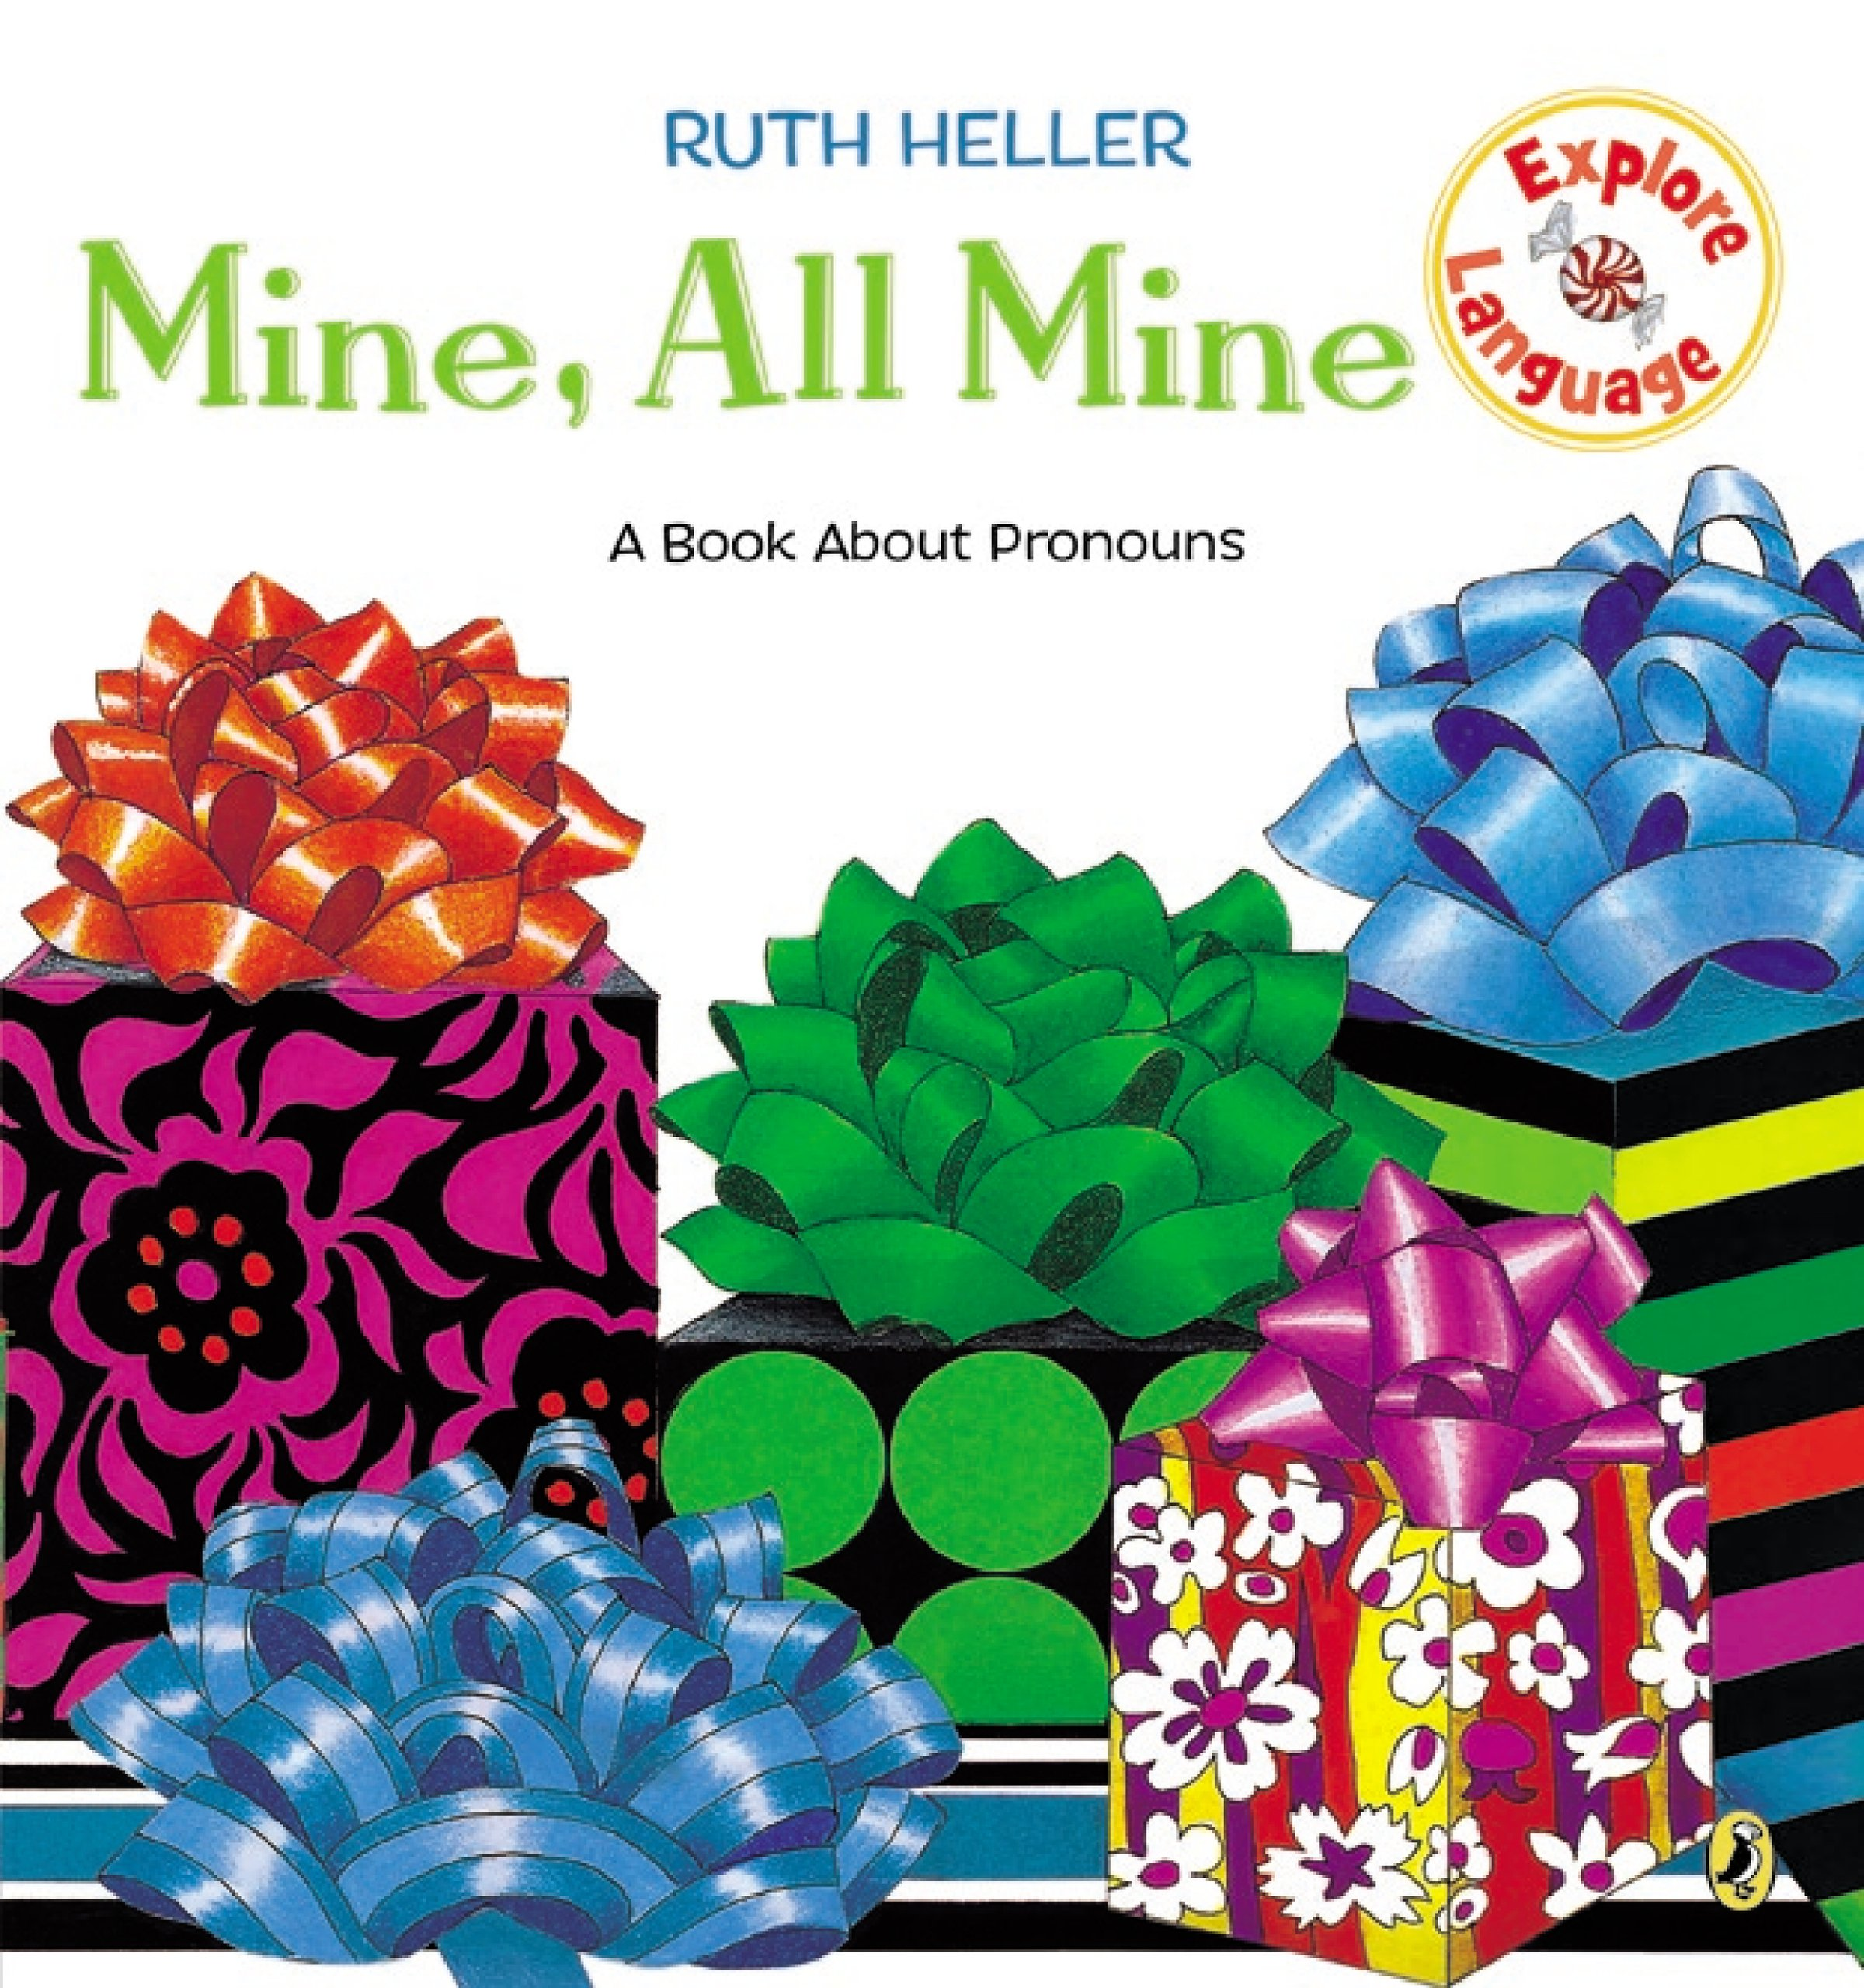 Cute Fashion Coloring Book Small For Colored Girls Book Solid Creative Coloring Books Dia De Los Muertos Coloring Book Old Hello Kitty Coloring Books BlueMosaic Coloring Books Mine, All Mine!: A Book About Pronouns (Explore!): Ruth Heller ..